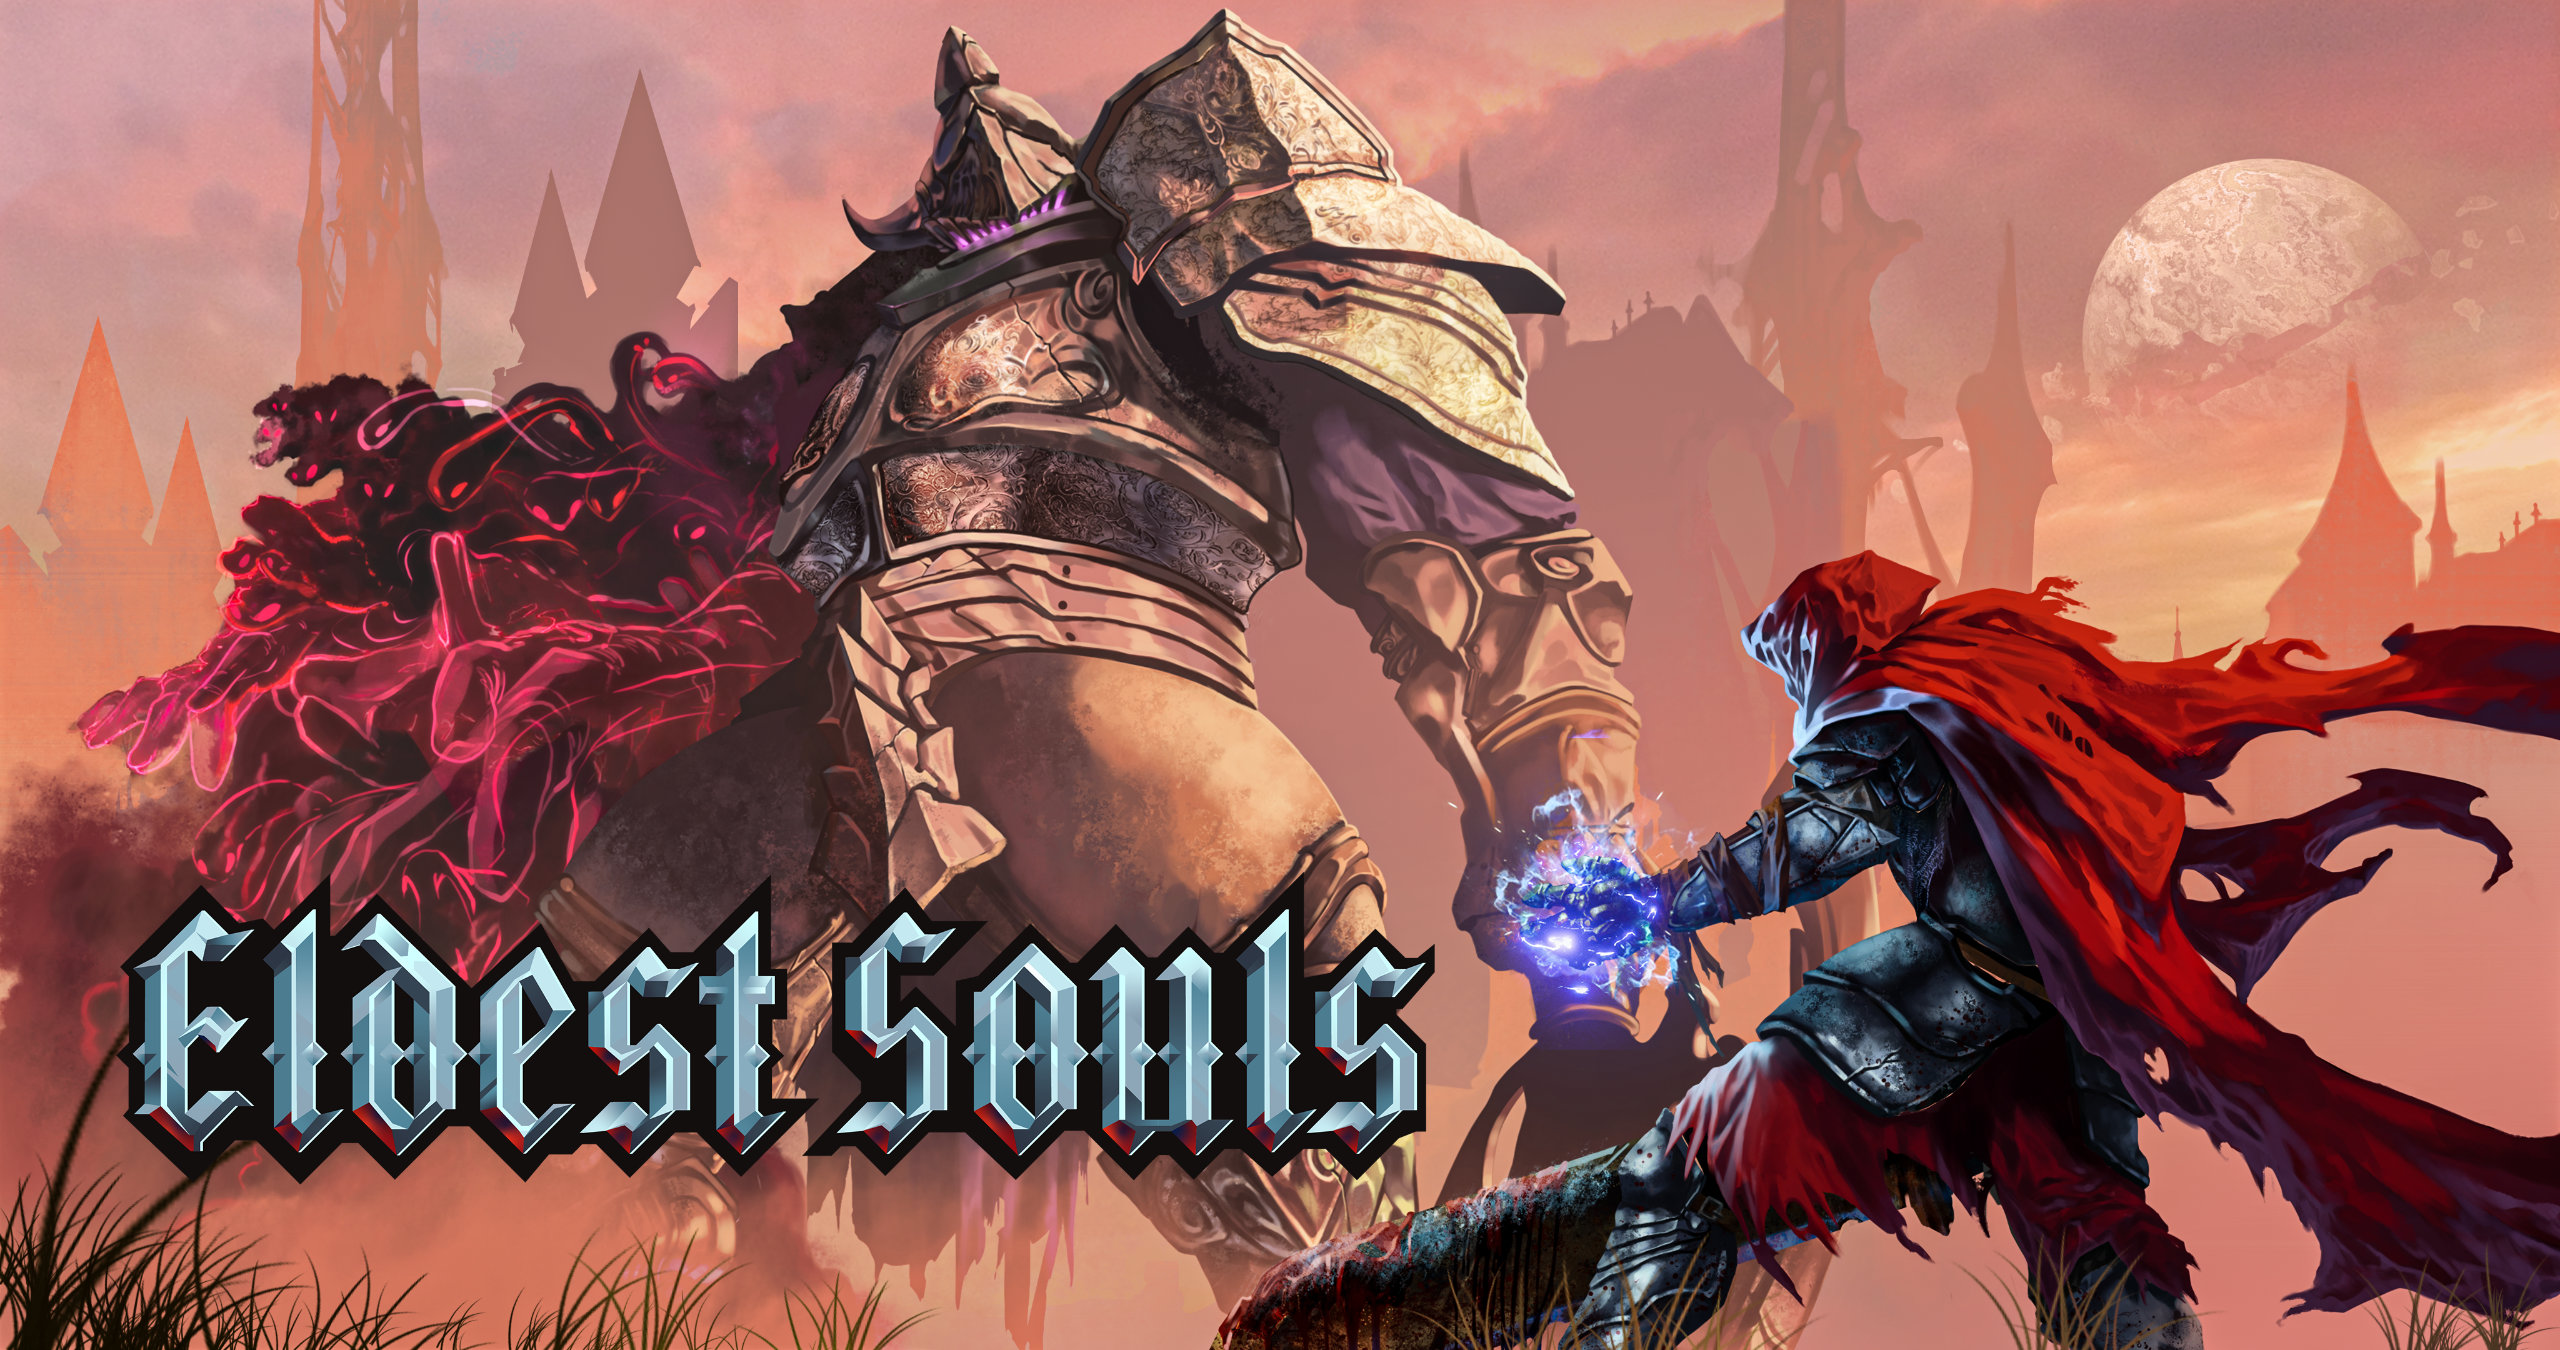 A picture of a large armoured figure facing down a sword-wielding figure who wears a red cape, with the words ELDEST SOUL set beside them.